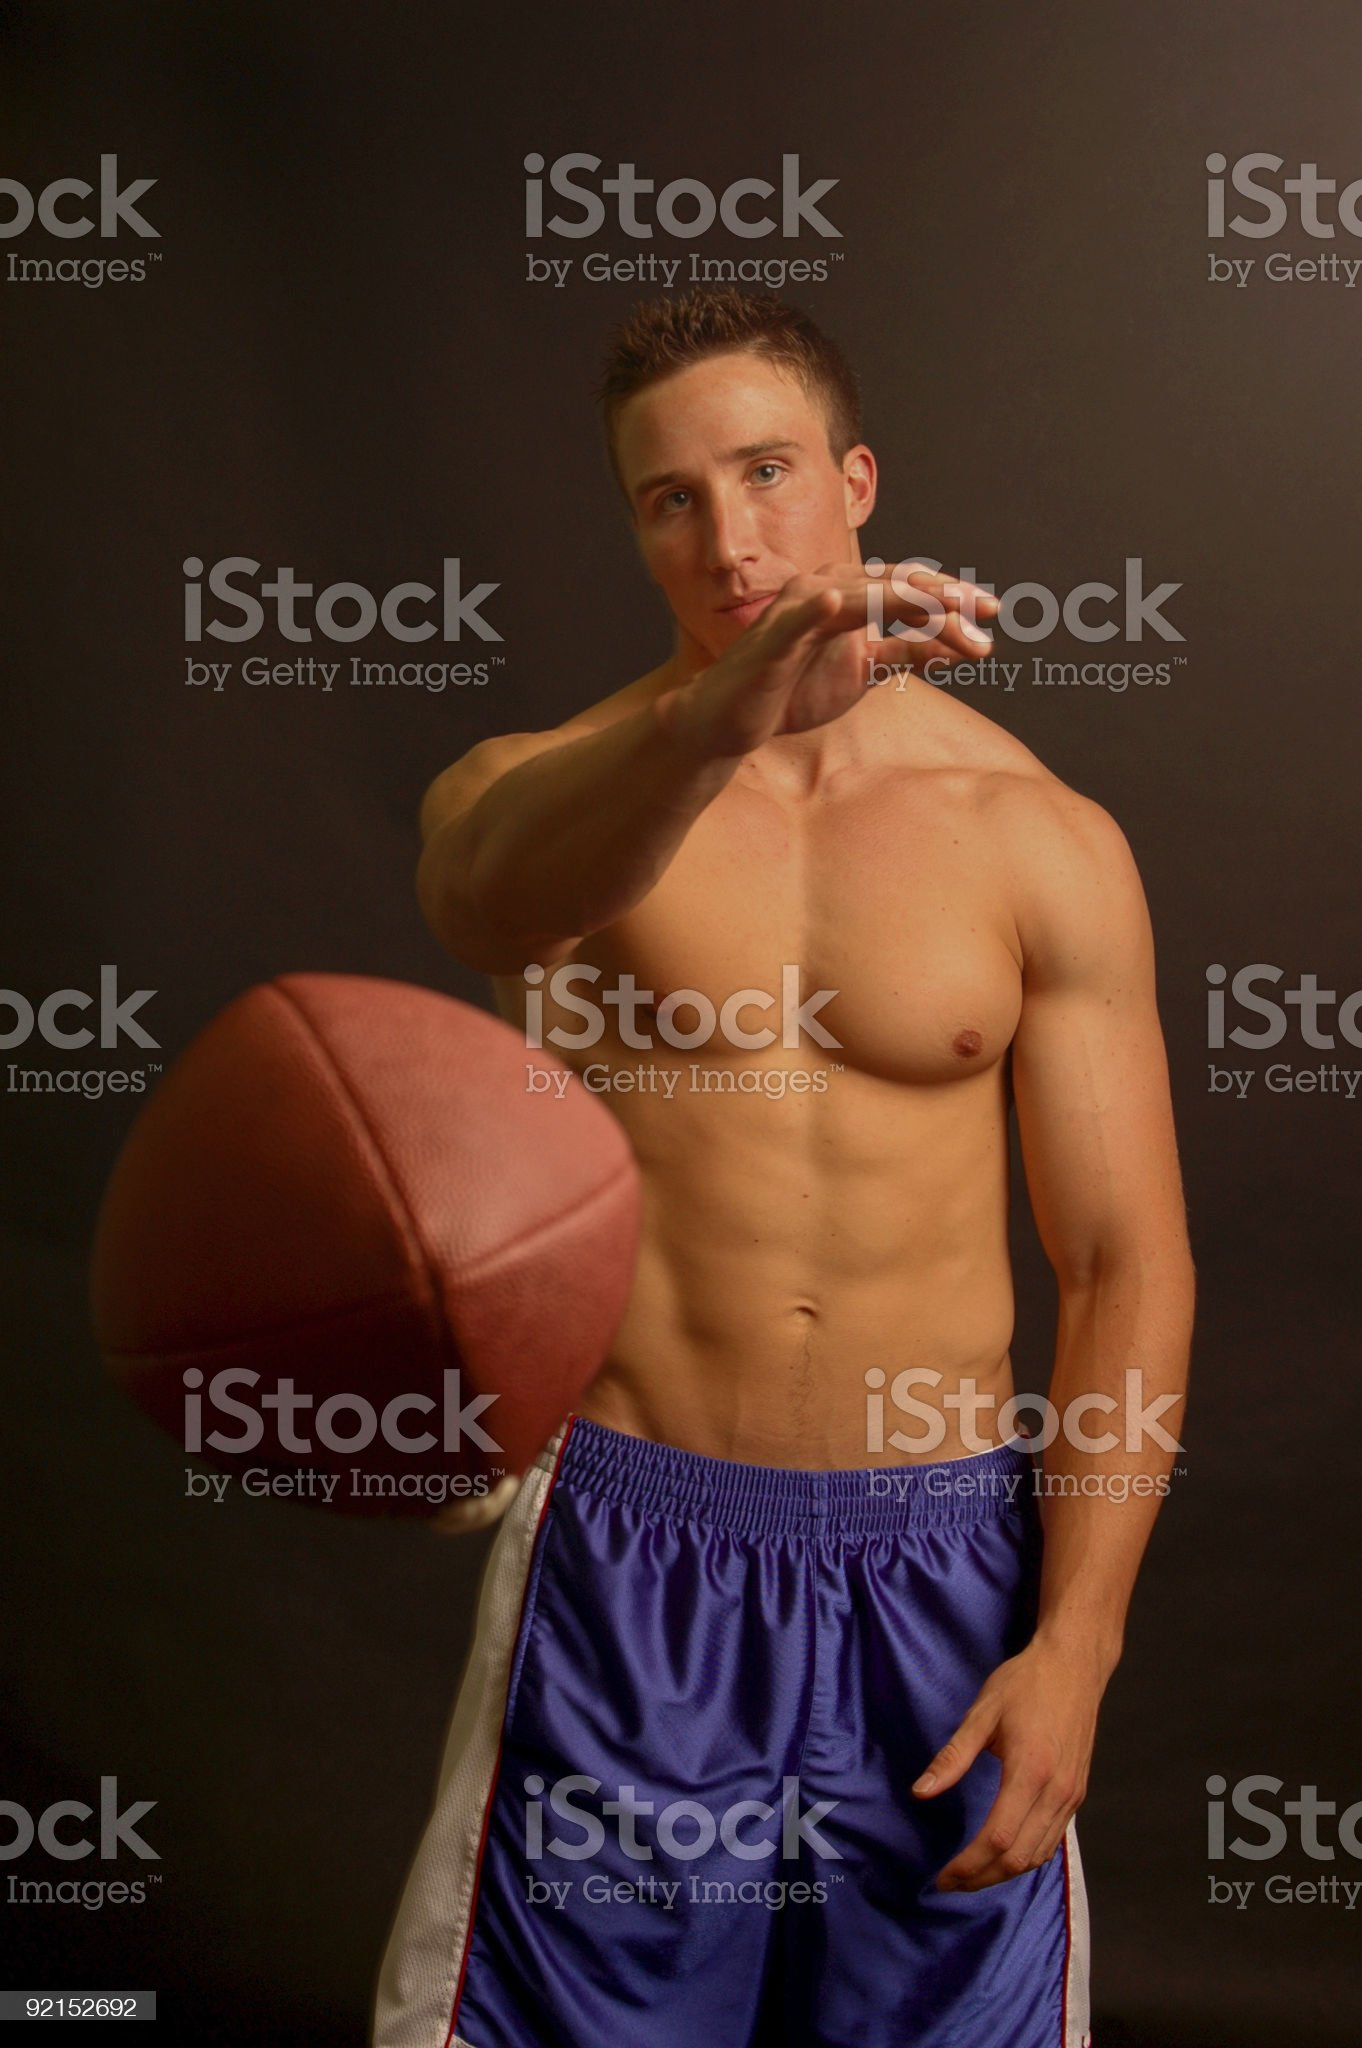 game of catch royalty-free stock photo